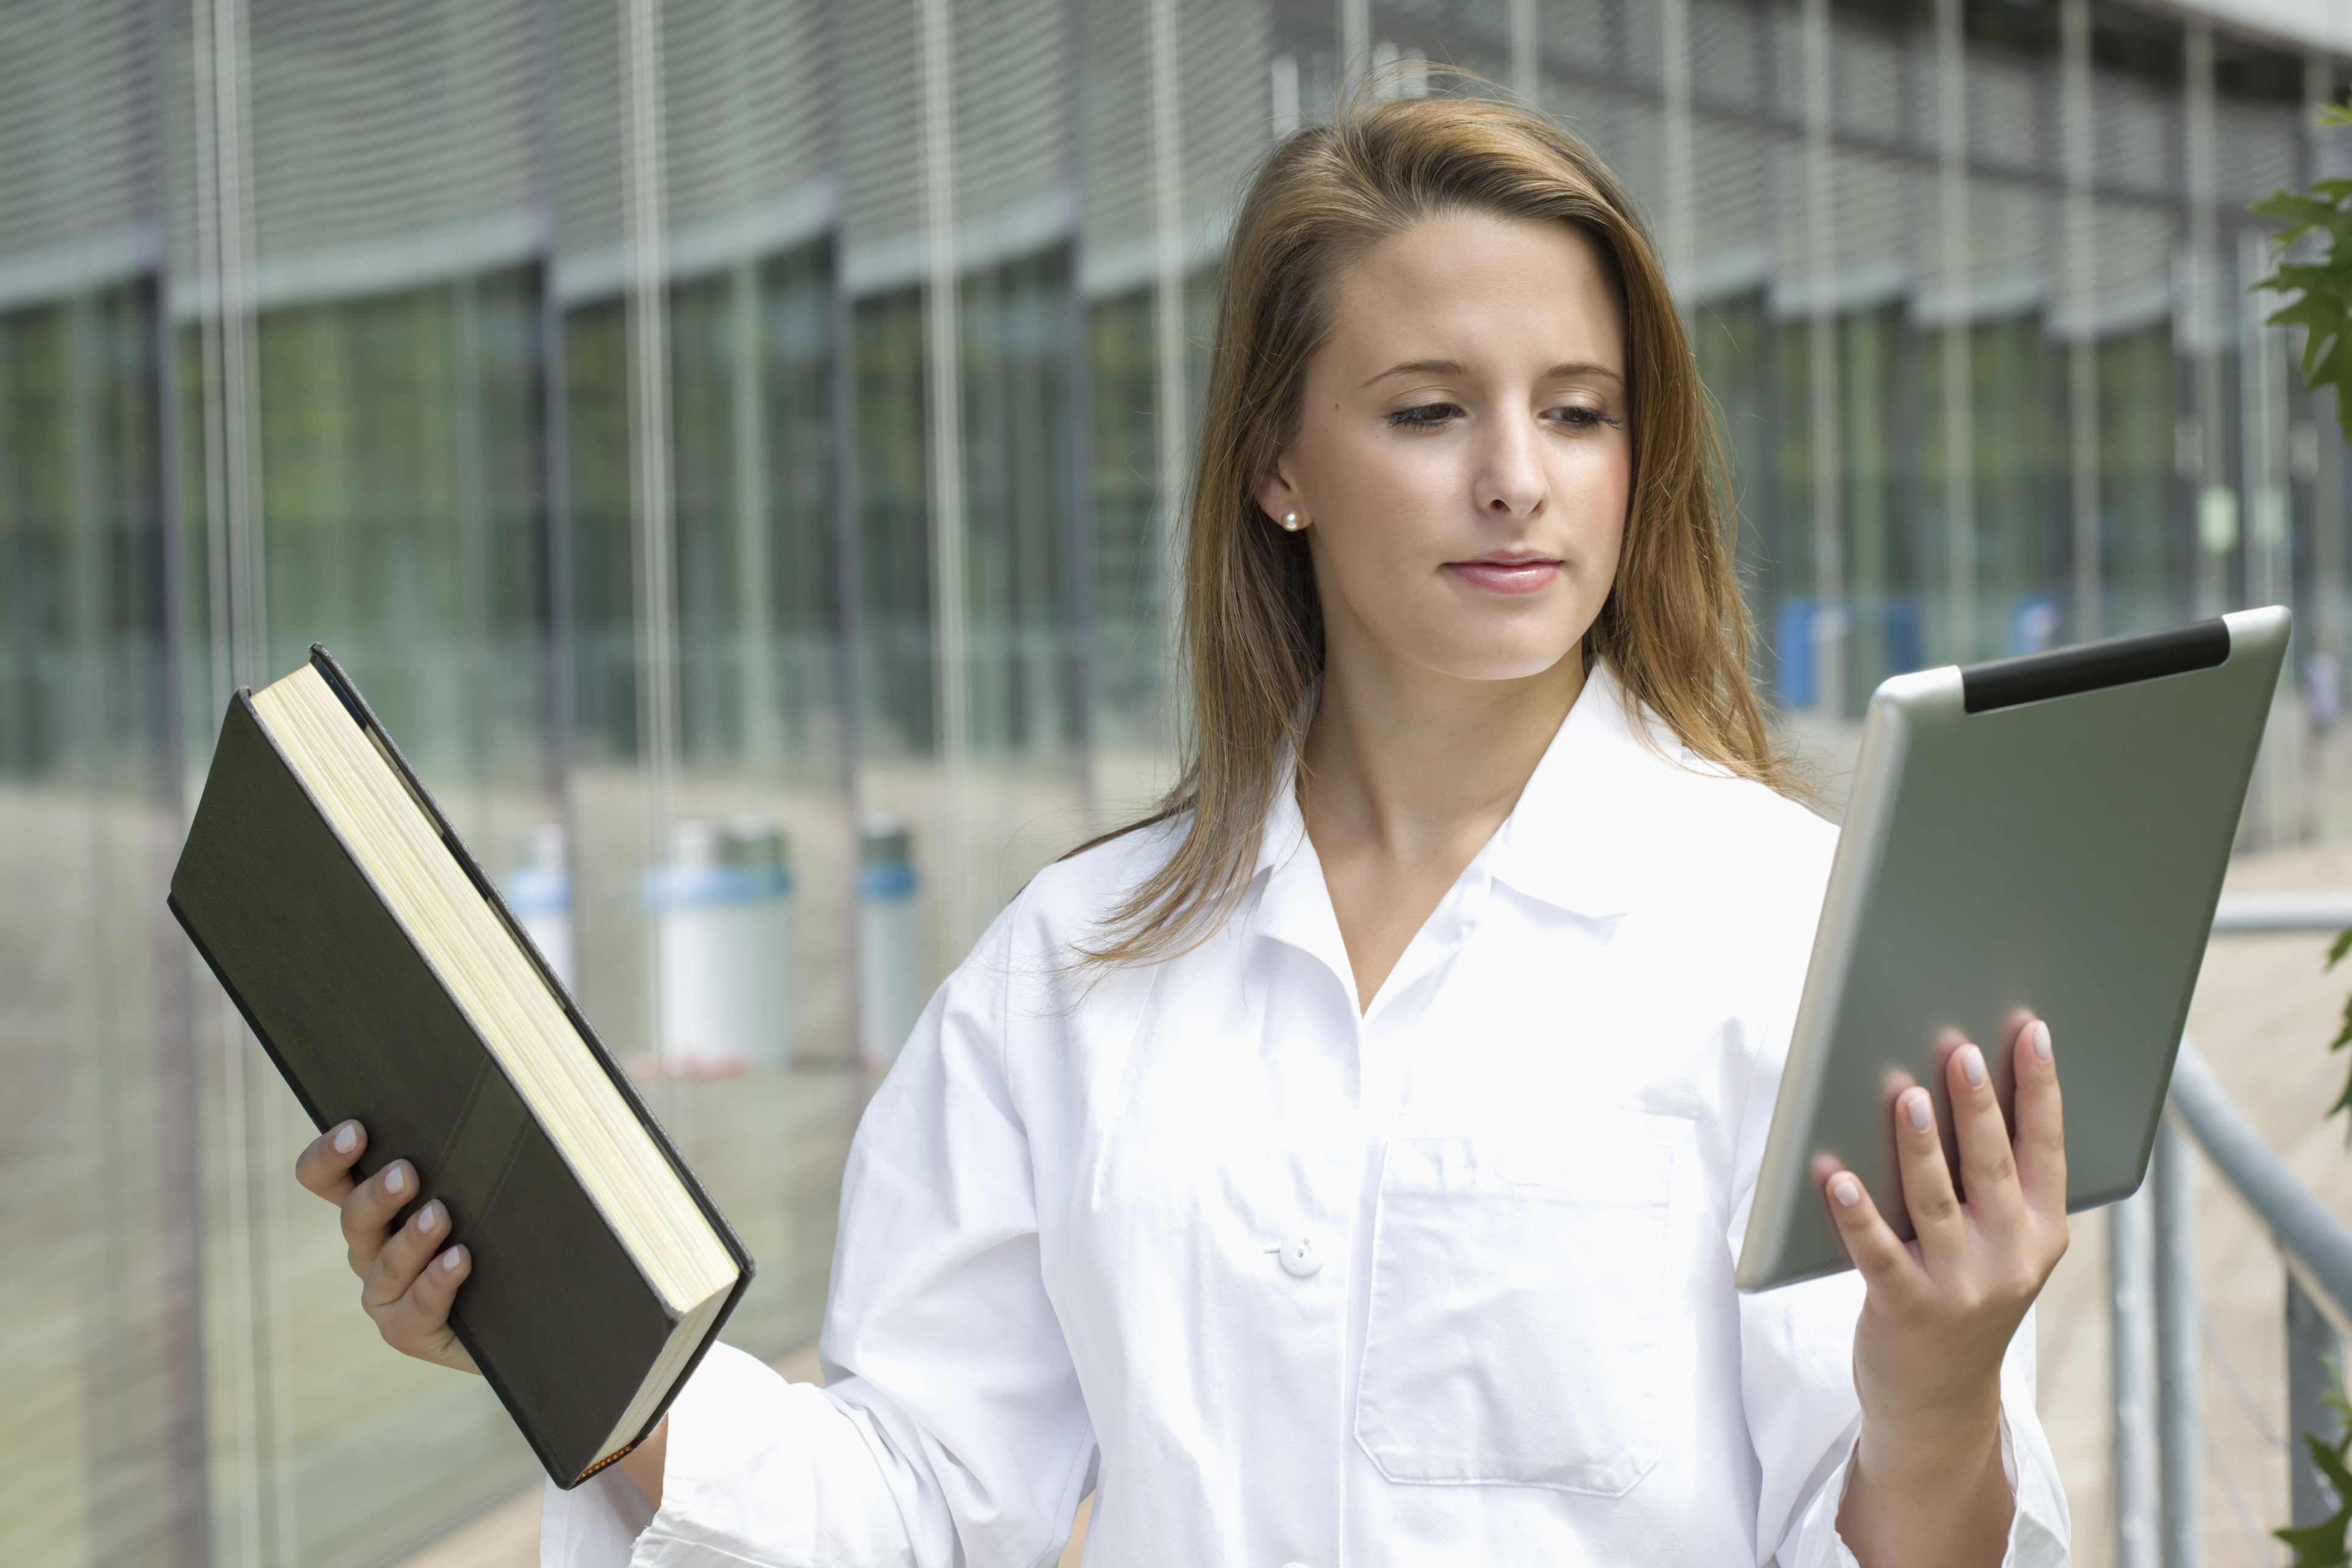 nontraditional students can be attractive medical school a glossary for medical school applicants